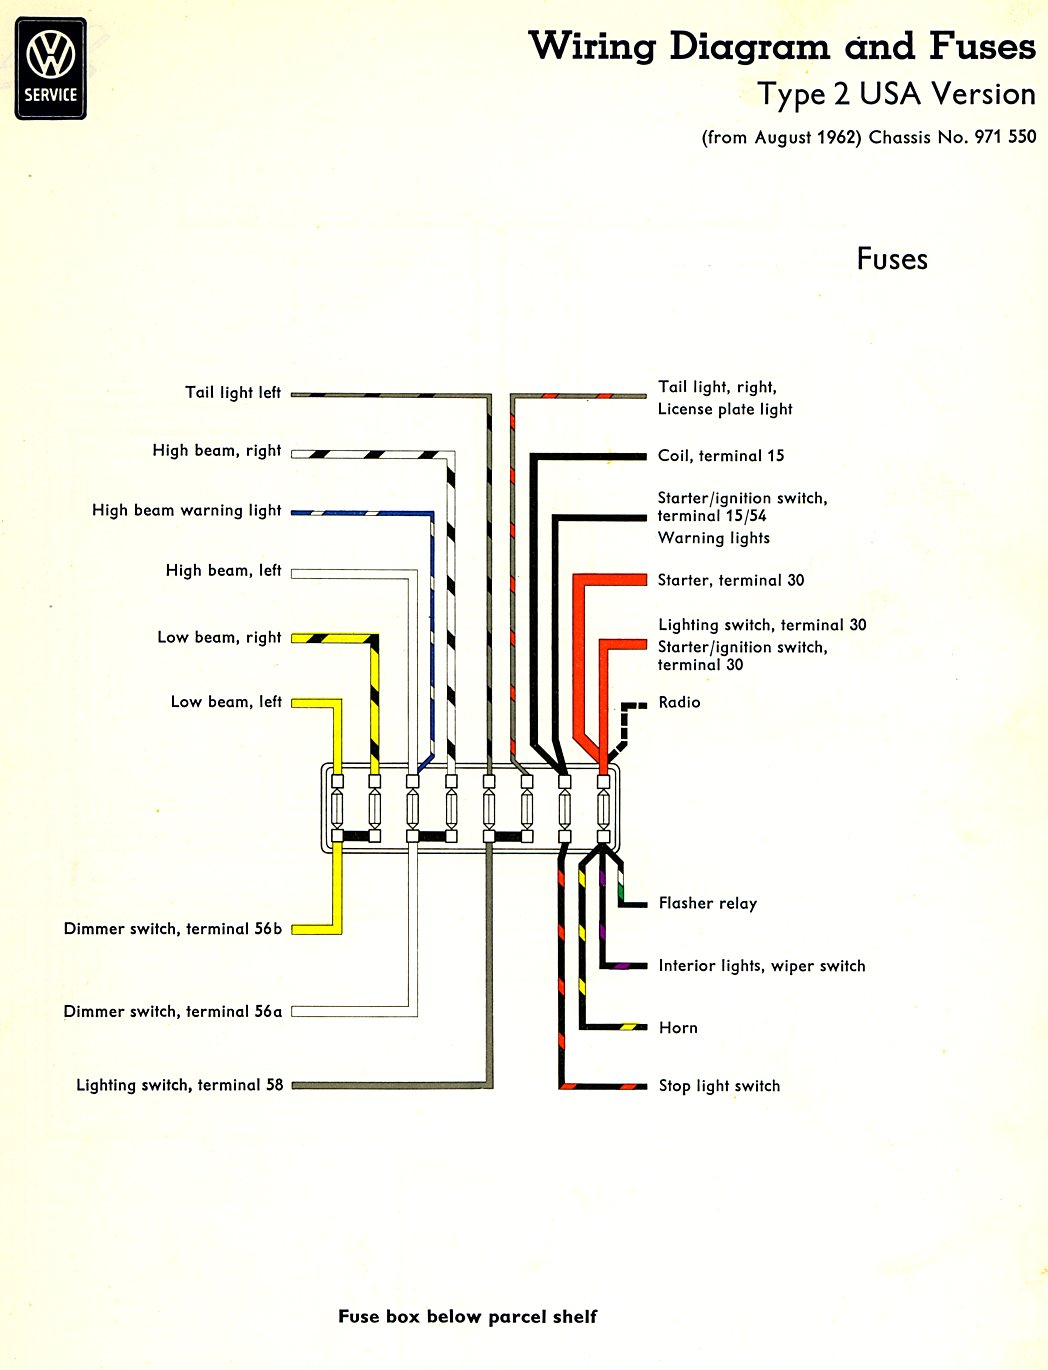 1970 Vw Beetle Tail Light Wiring Diagram : Turn signal wiring diagram vw get free image about